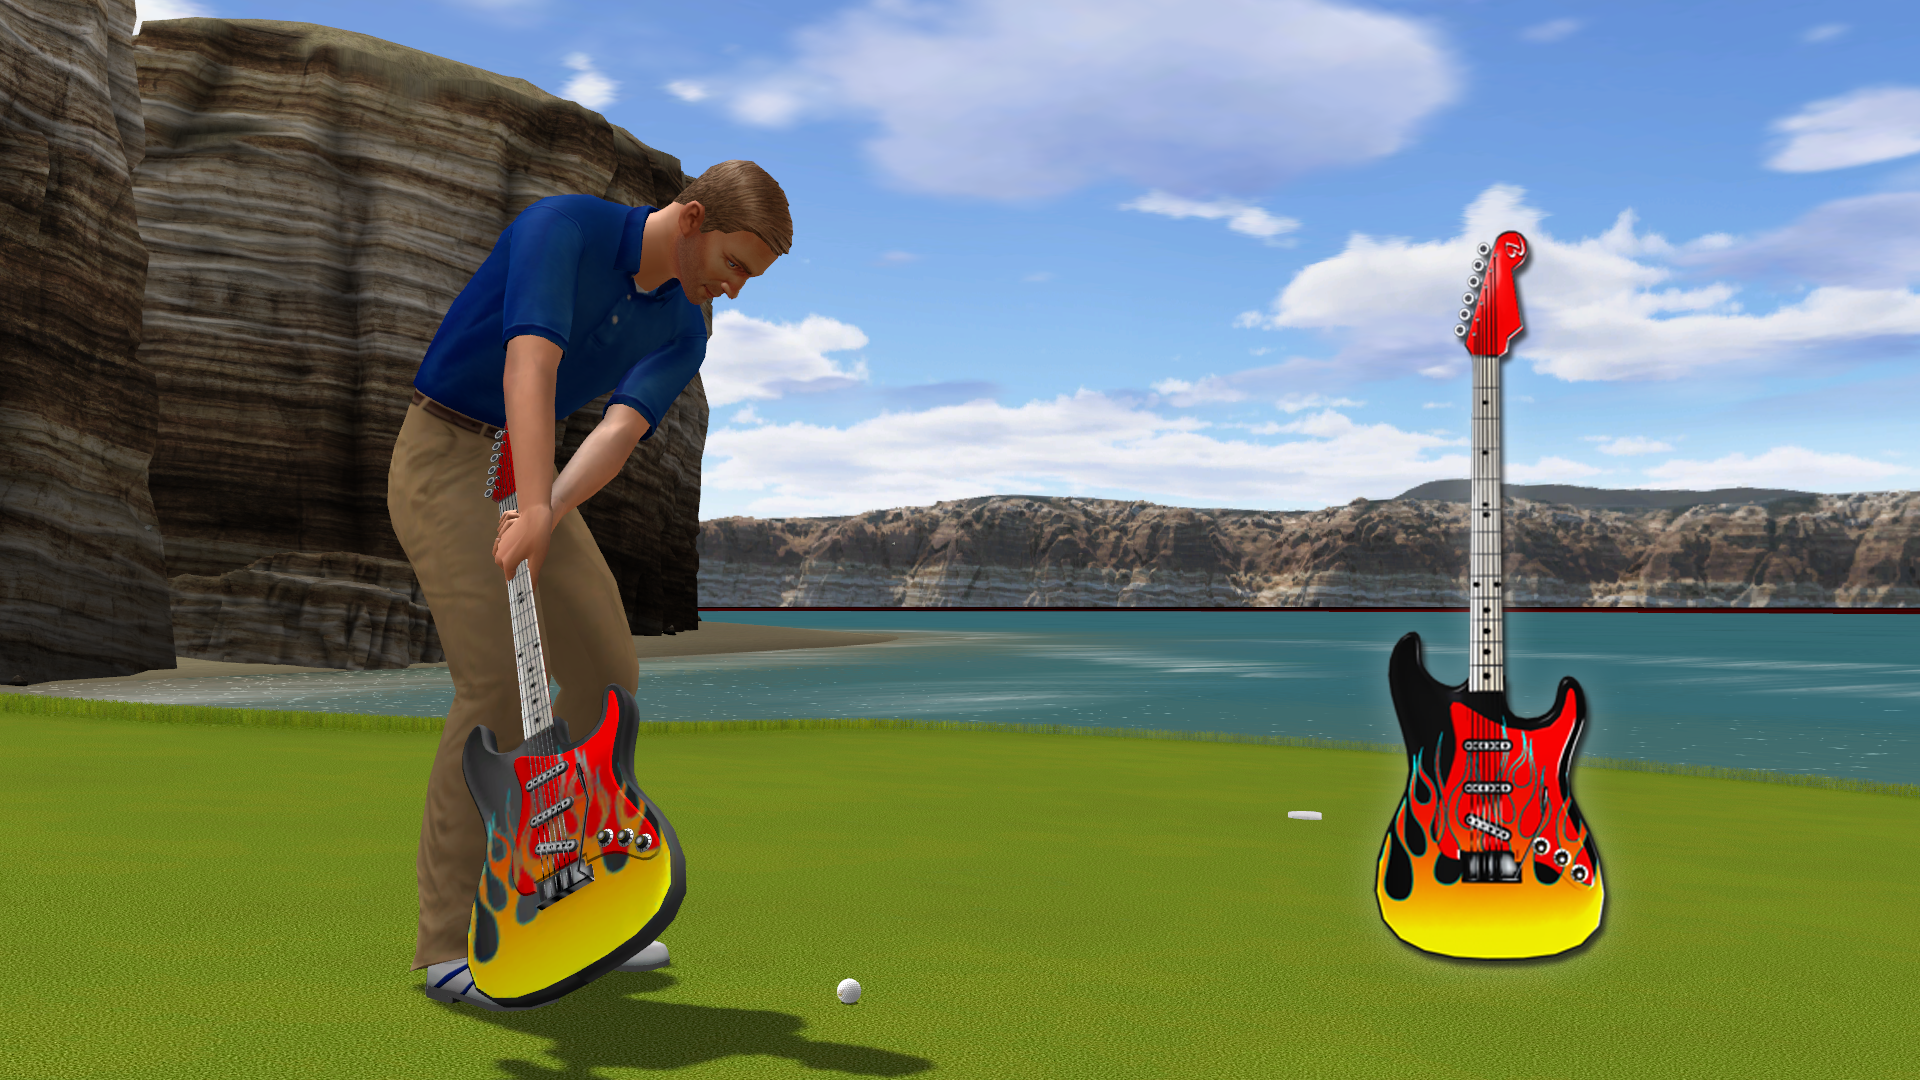 Golden Tee 2019: Custom guitar putter